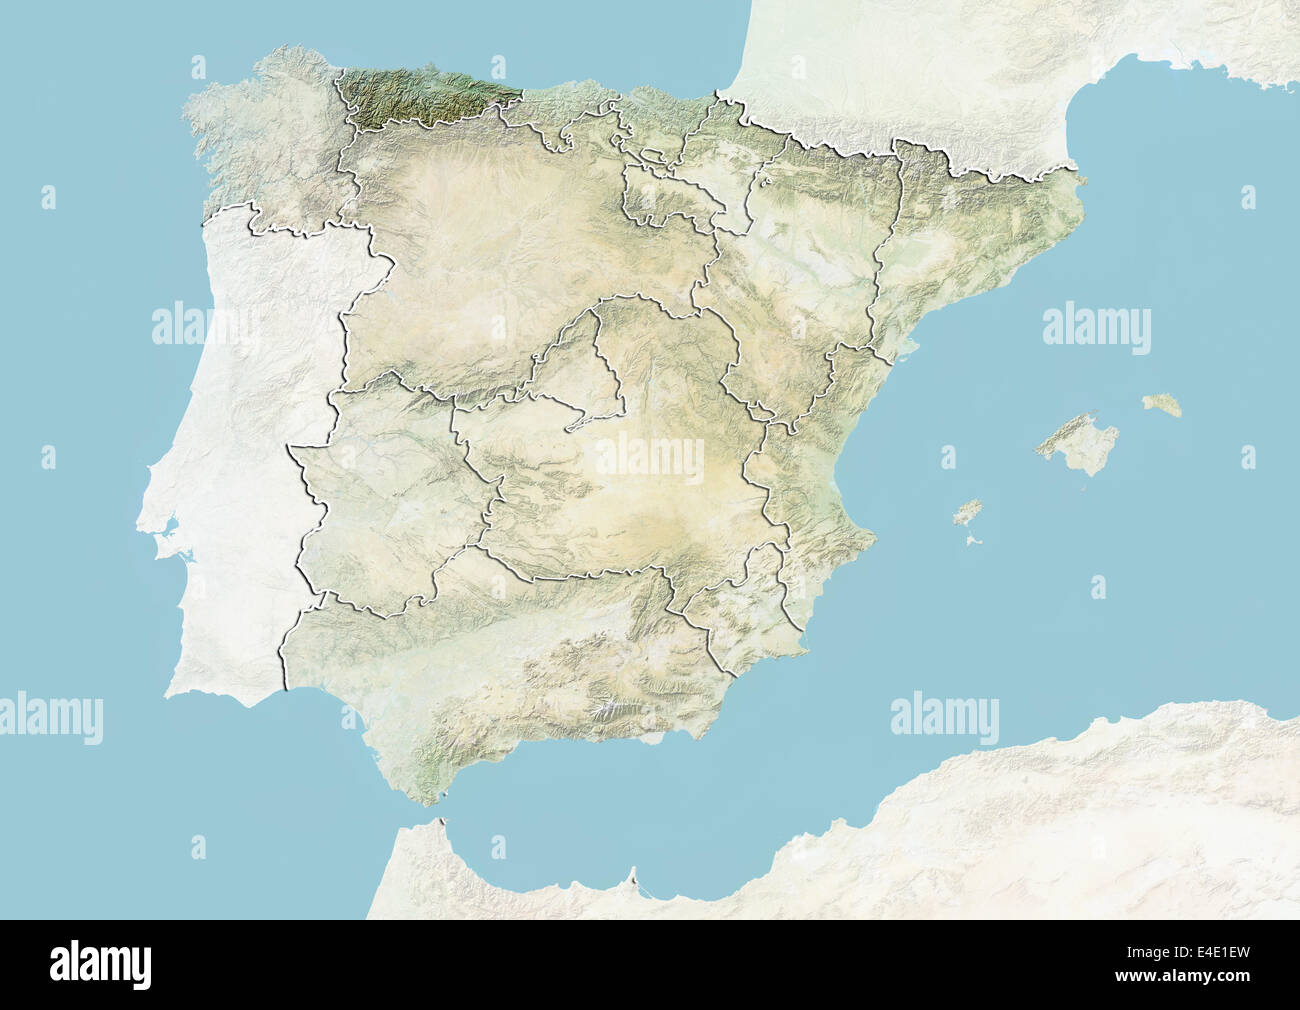 Spain and the Region of Asturias Relief Map Stock Photo 71608625